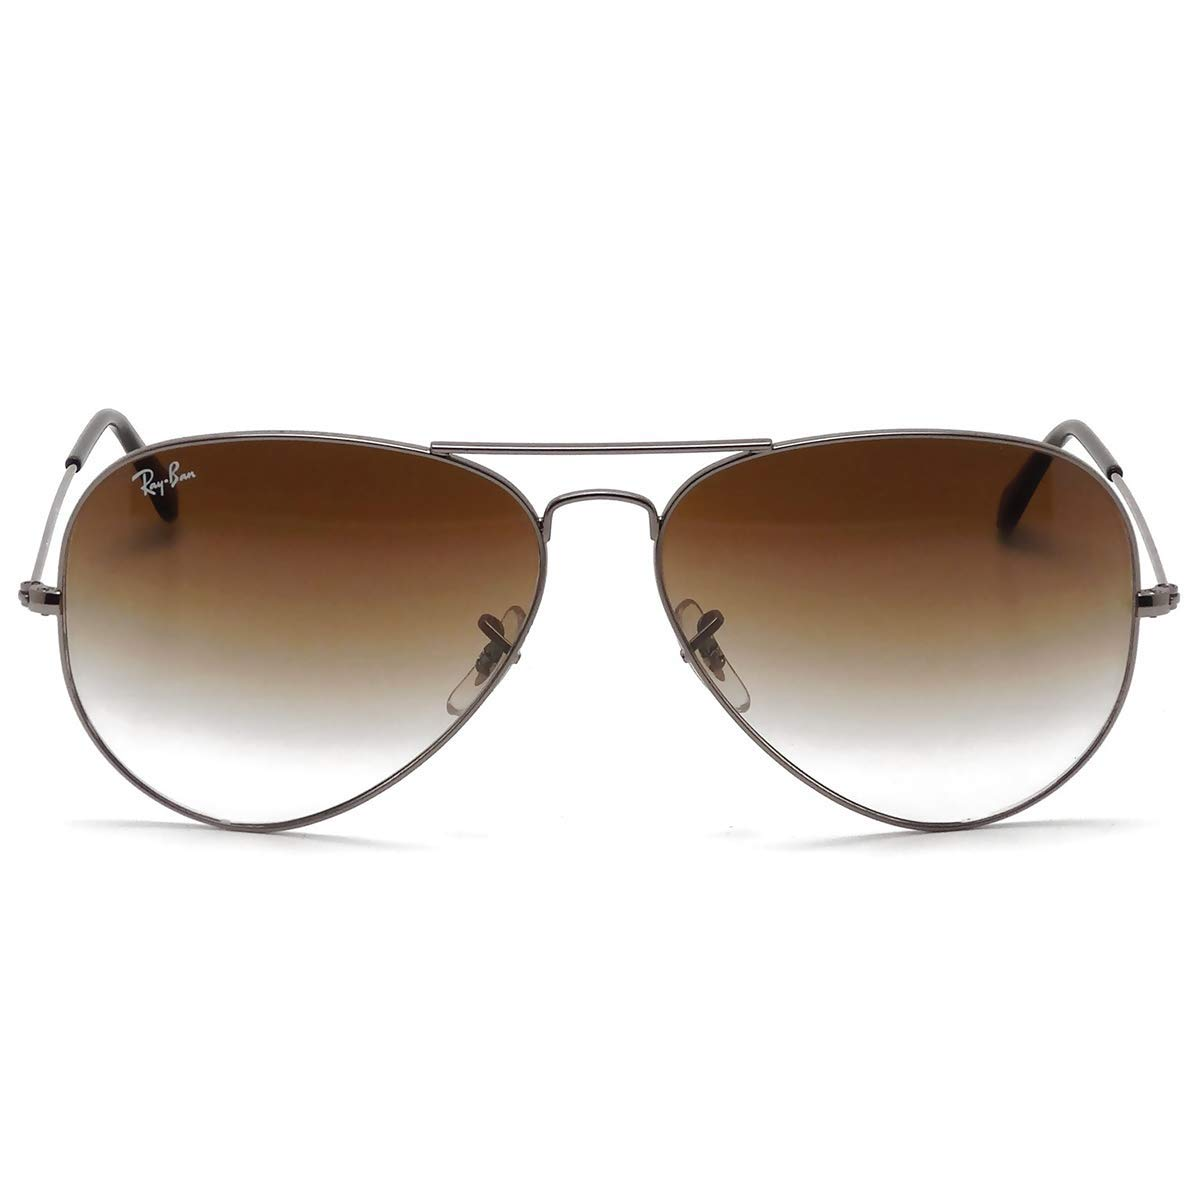 13cee198c62 Ray-Ban Gradient Aviator Sunglasses (0RB3025004 5162)  RAYBAN  Amazon.in   Clothing   Accessories